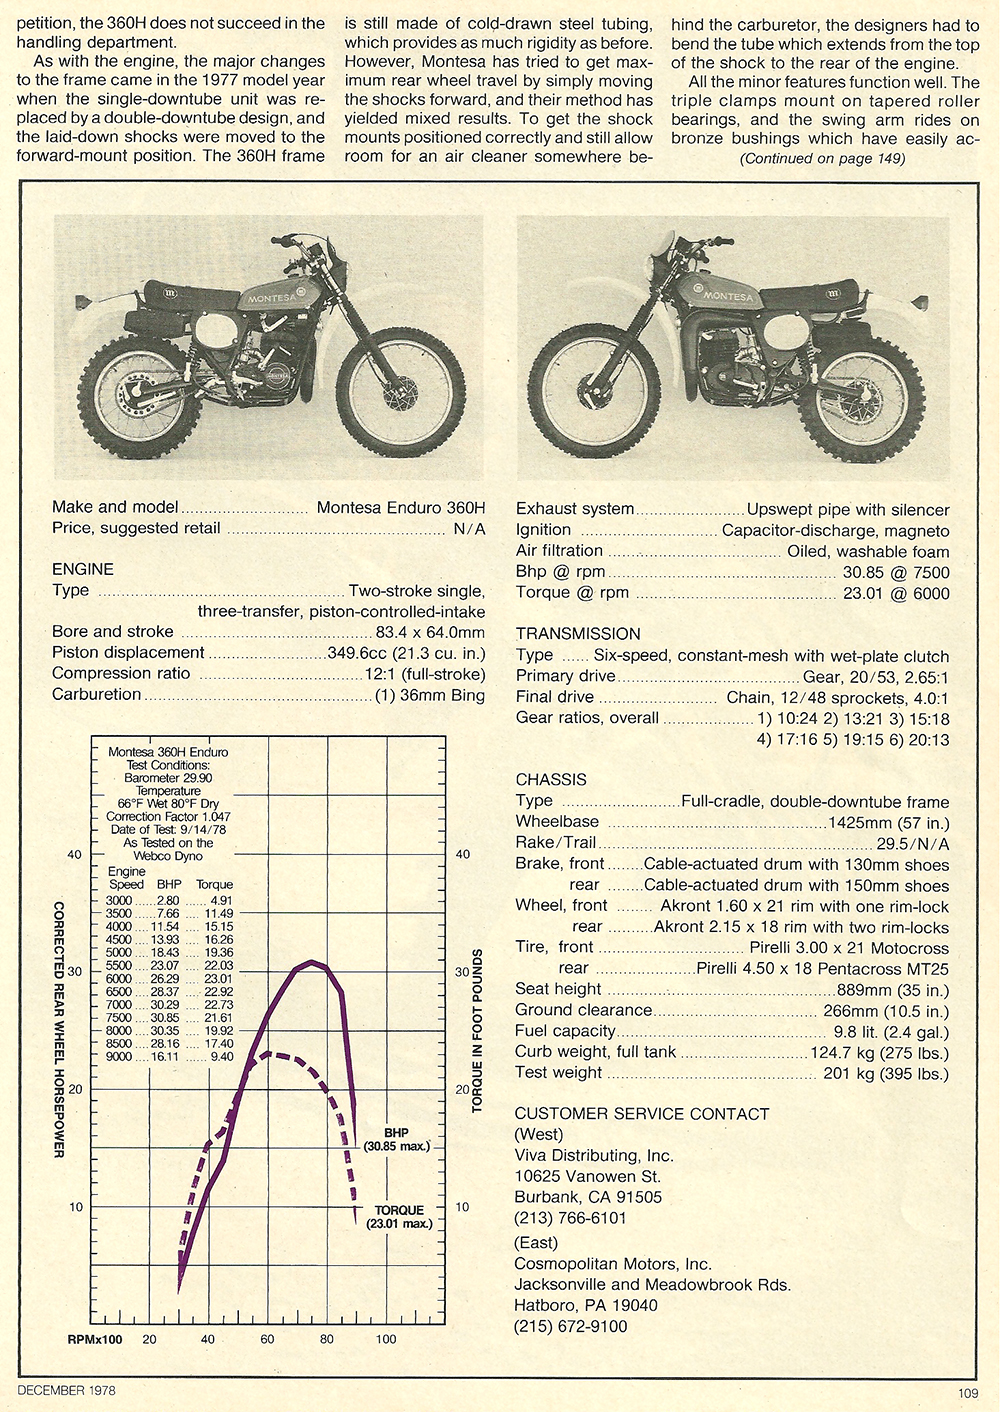 1978 Montesa enduro 360H road test 06.jpg